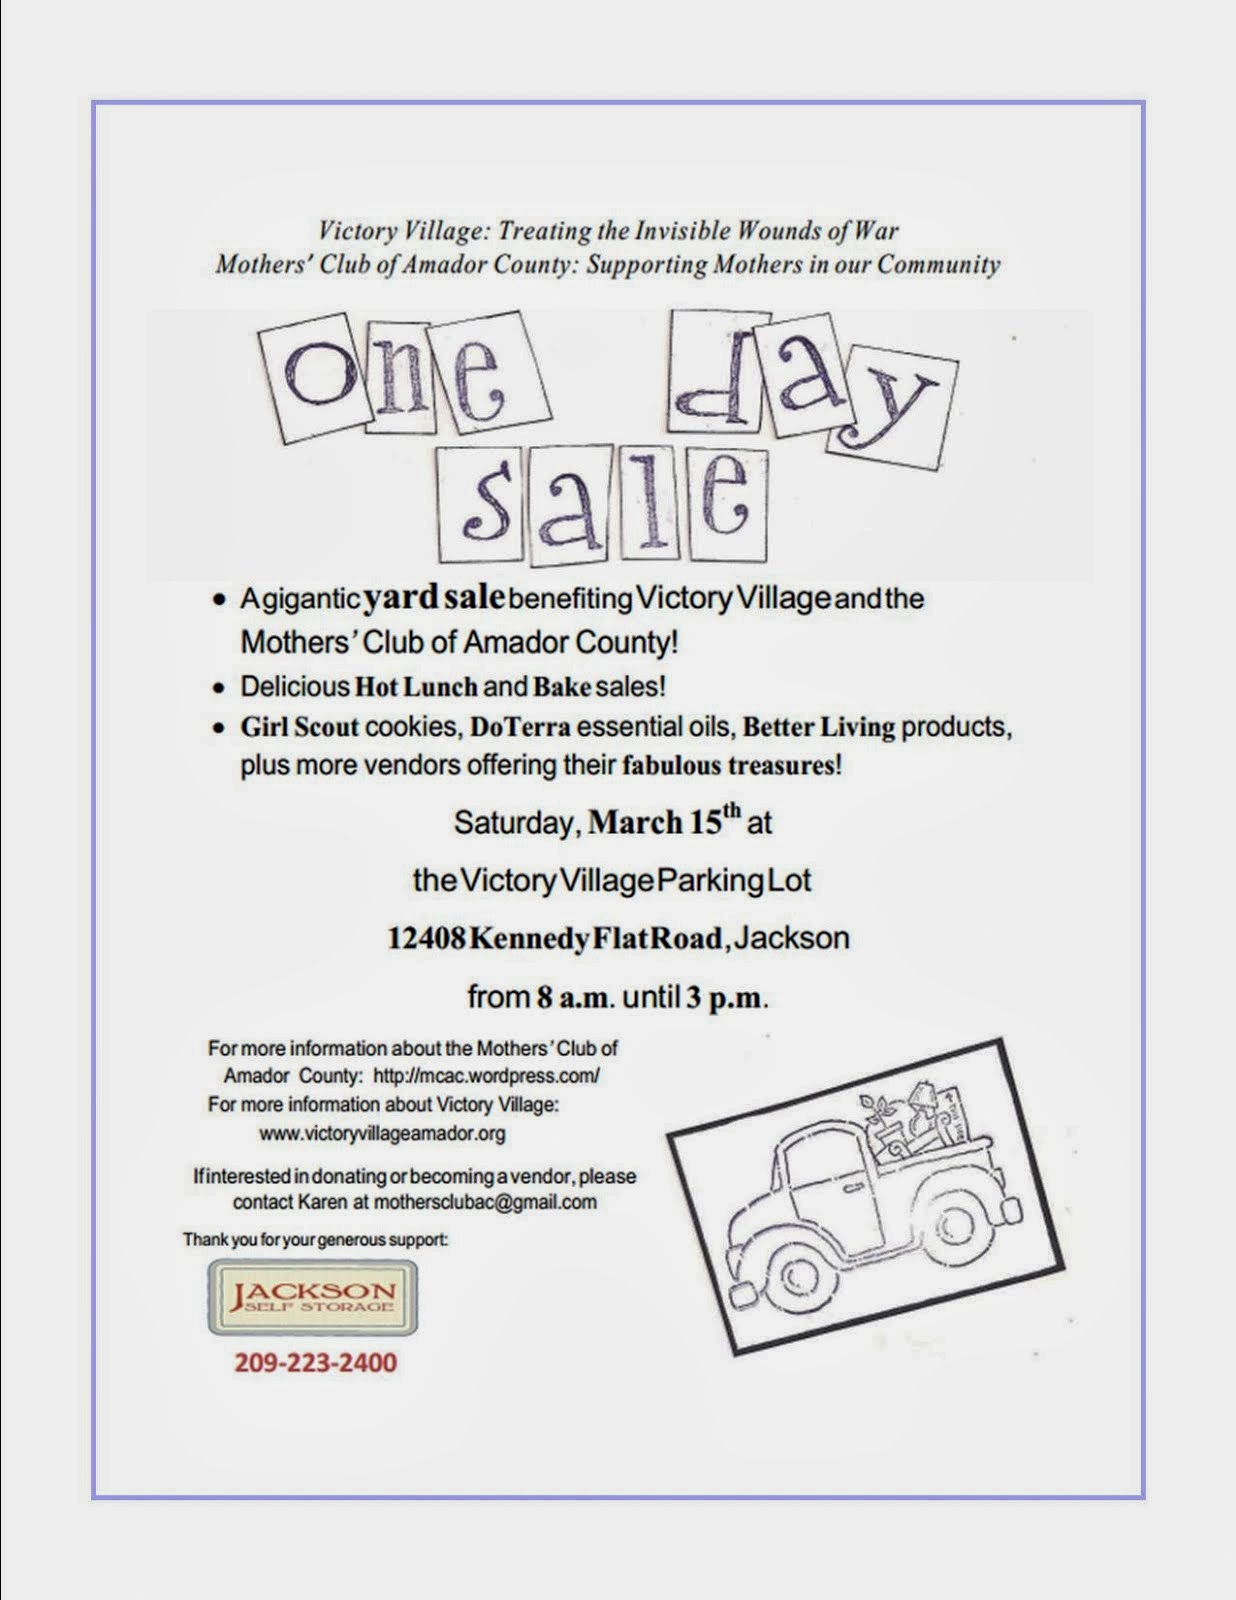 One Day Sale - Sat Mar 15